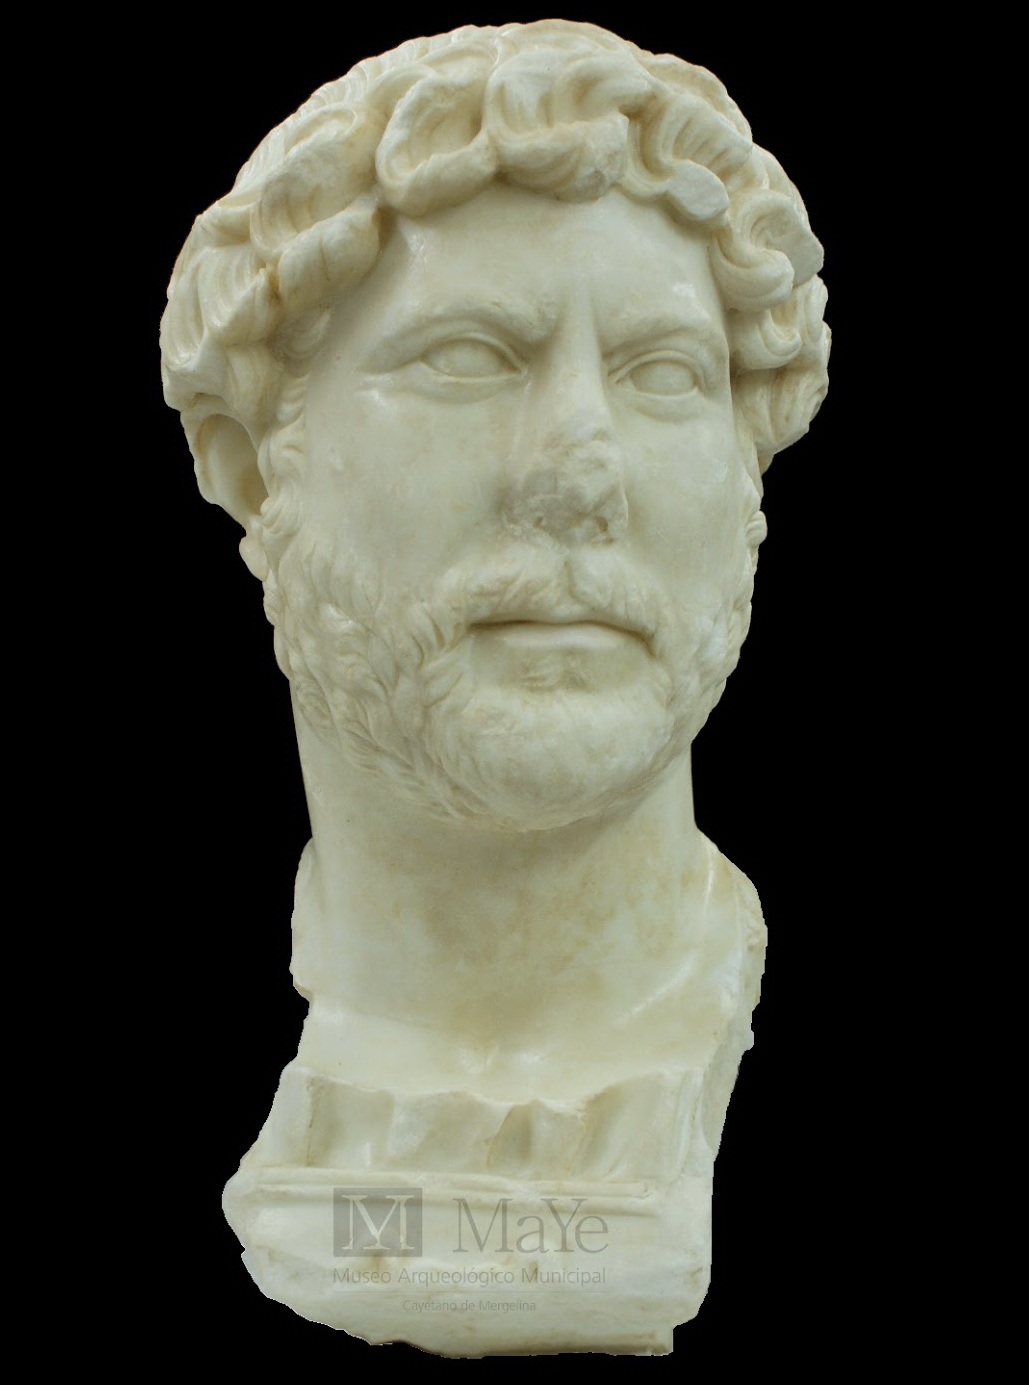 hadrian Hadrian nolonger sells separately it must be ordered with hinge #hh300 or hinge #hh500.